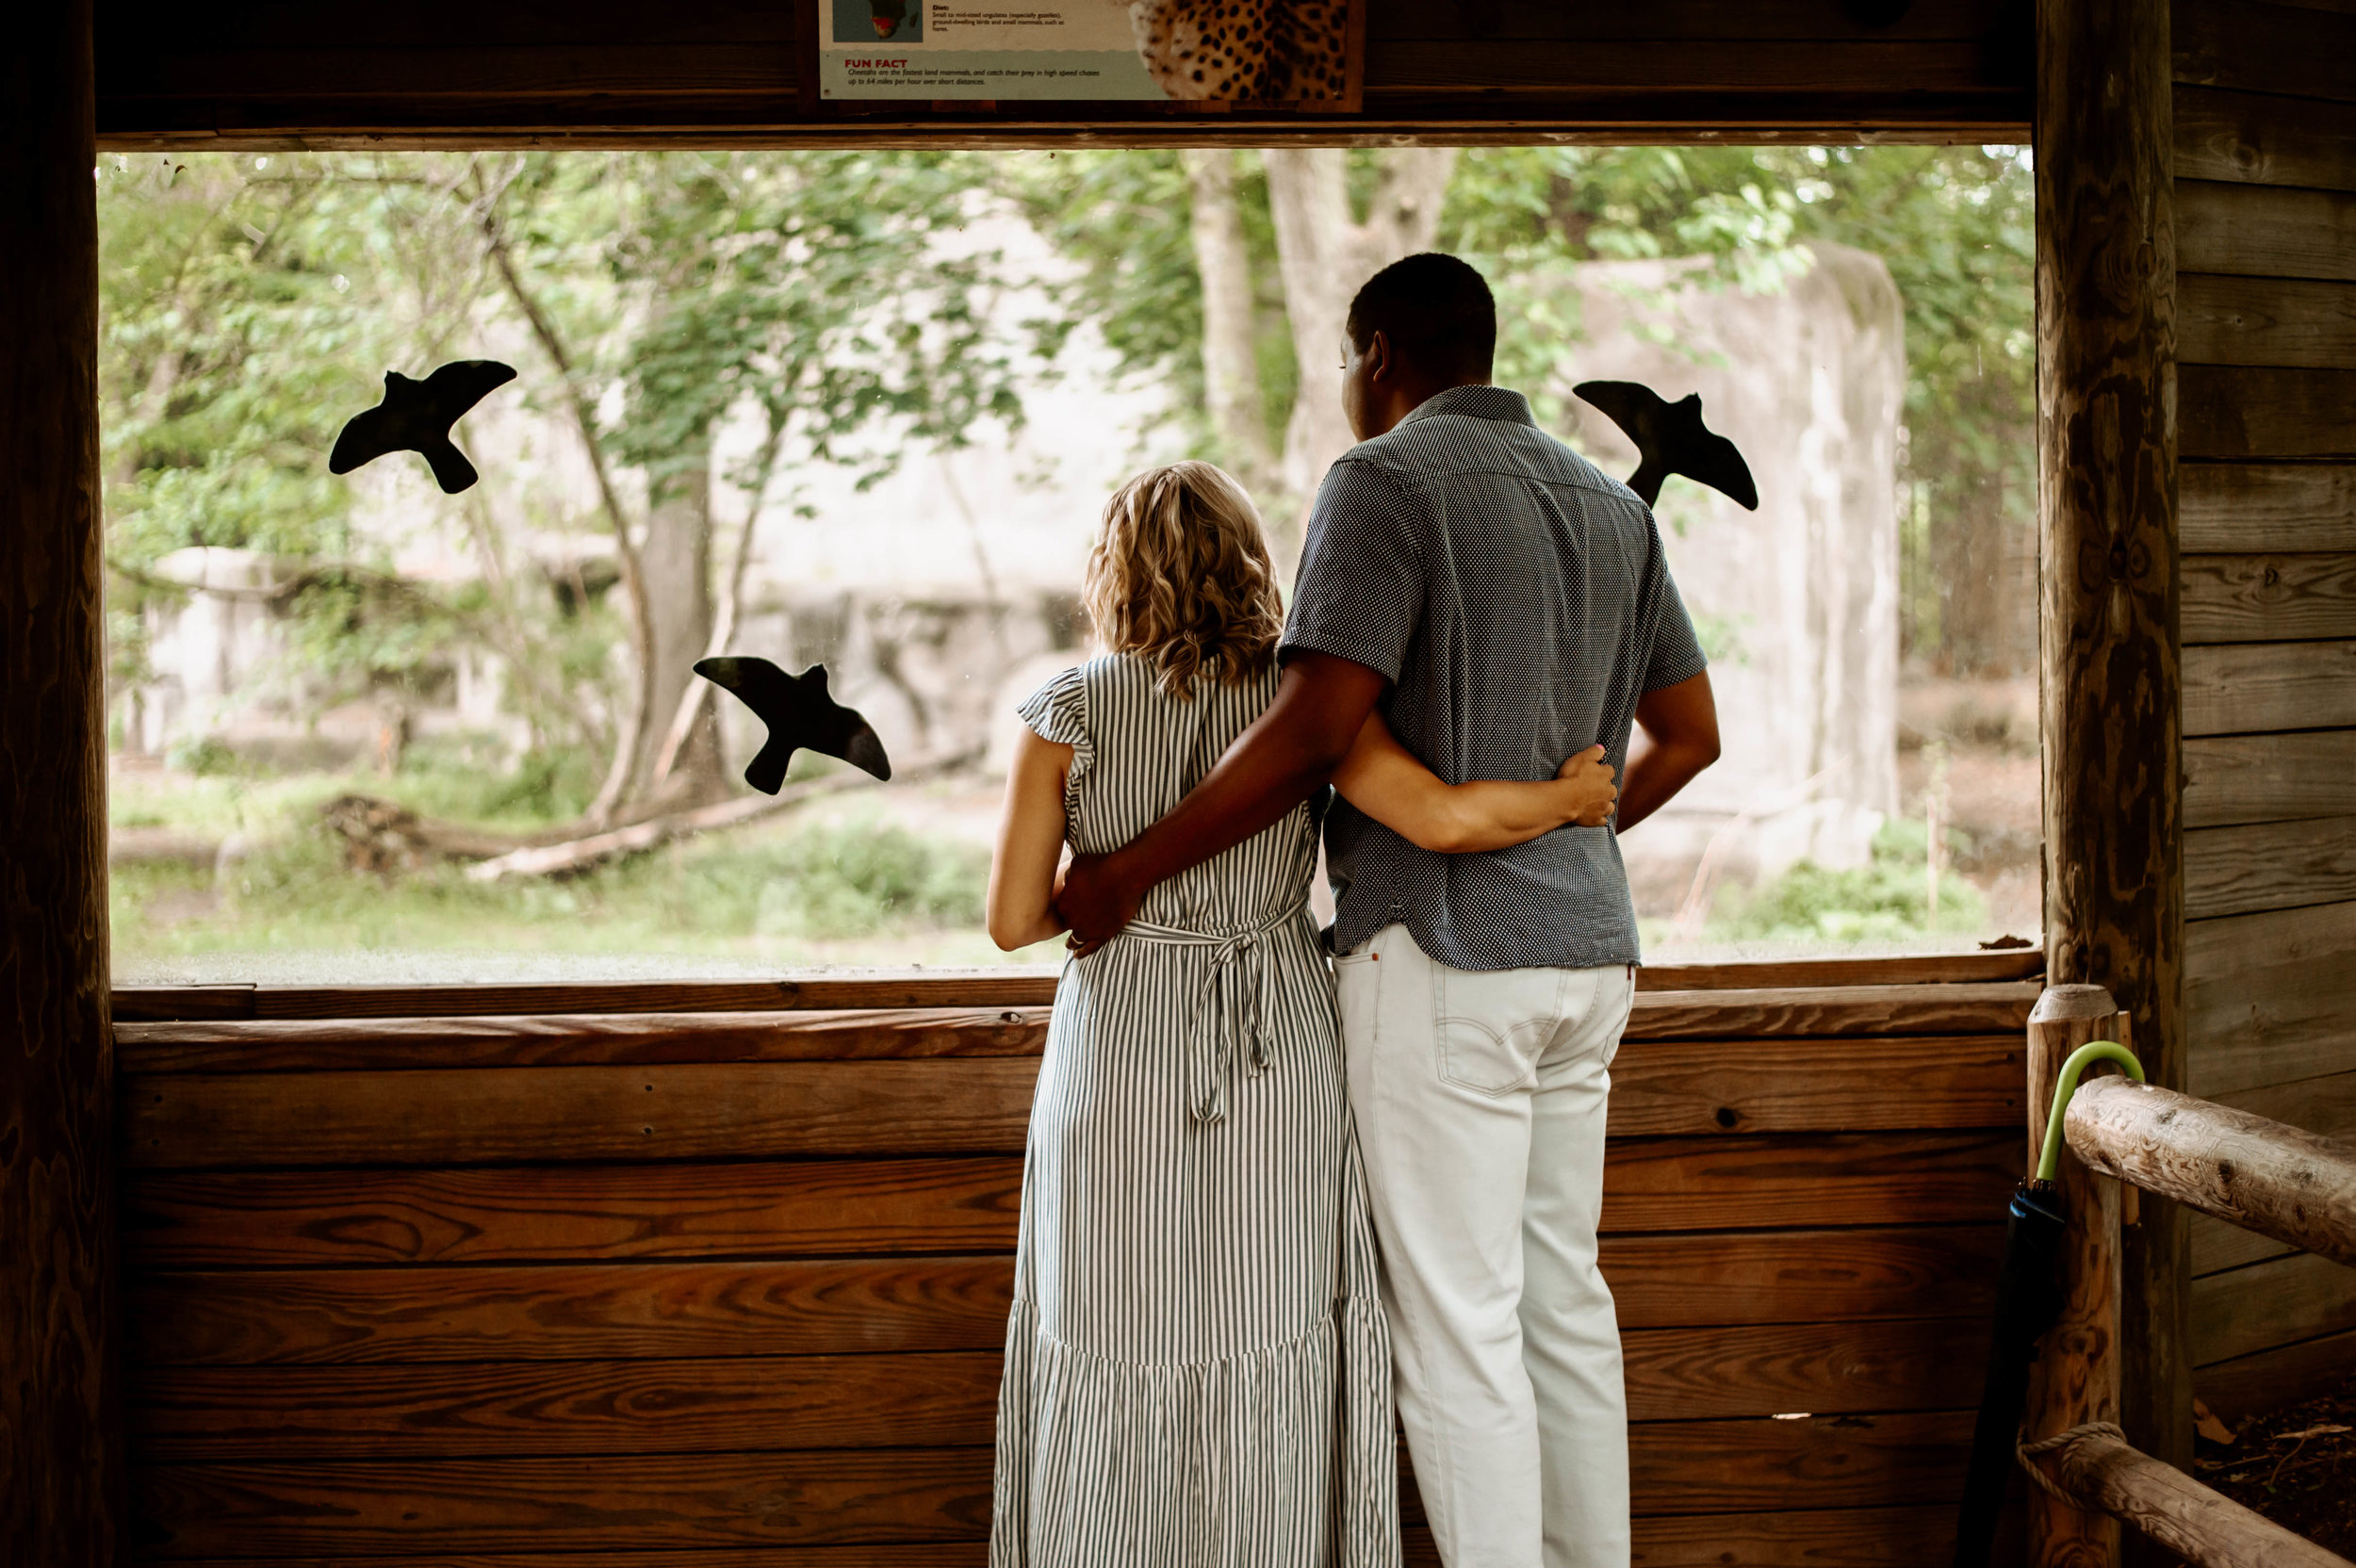 maternity session at the zoo-2.jpg